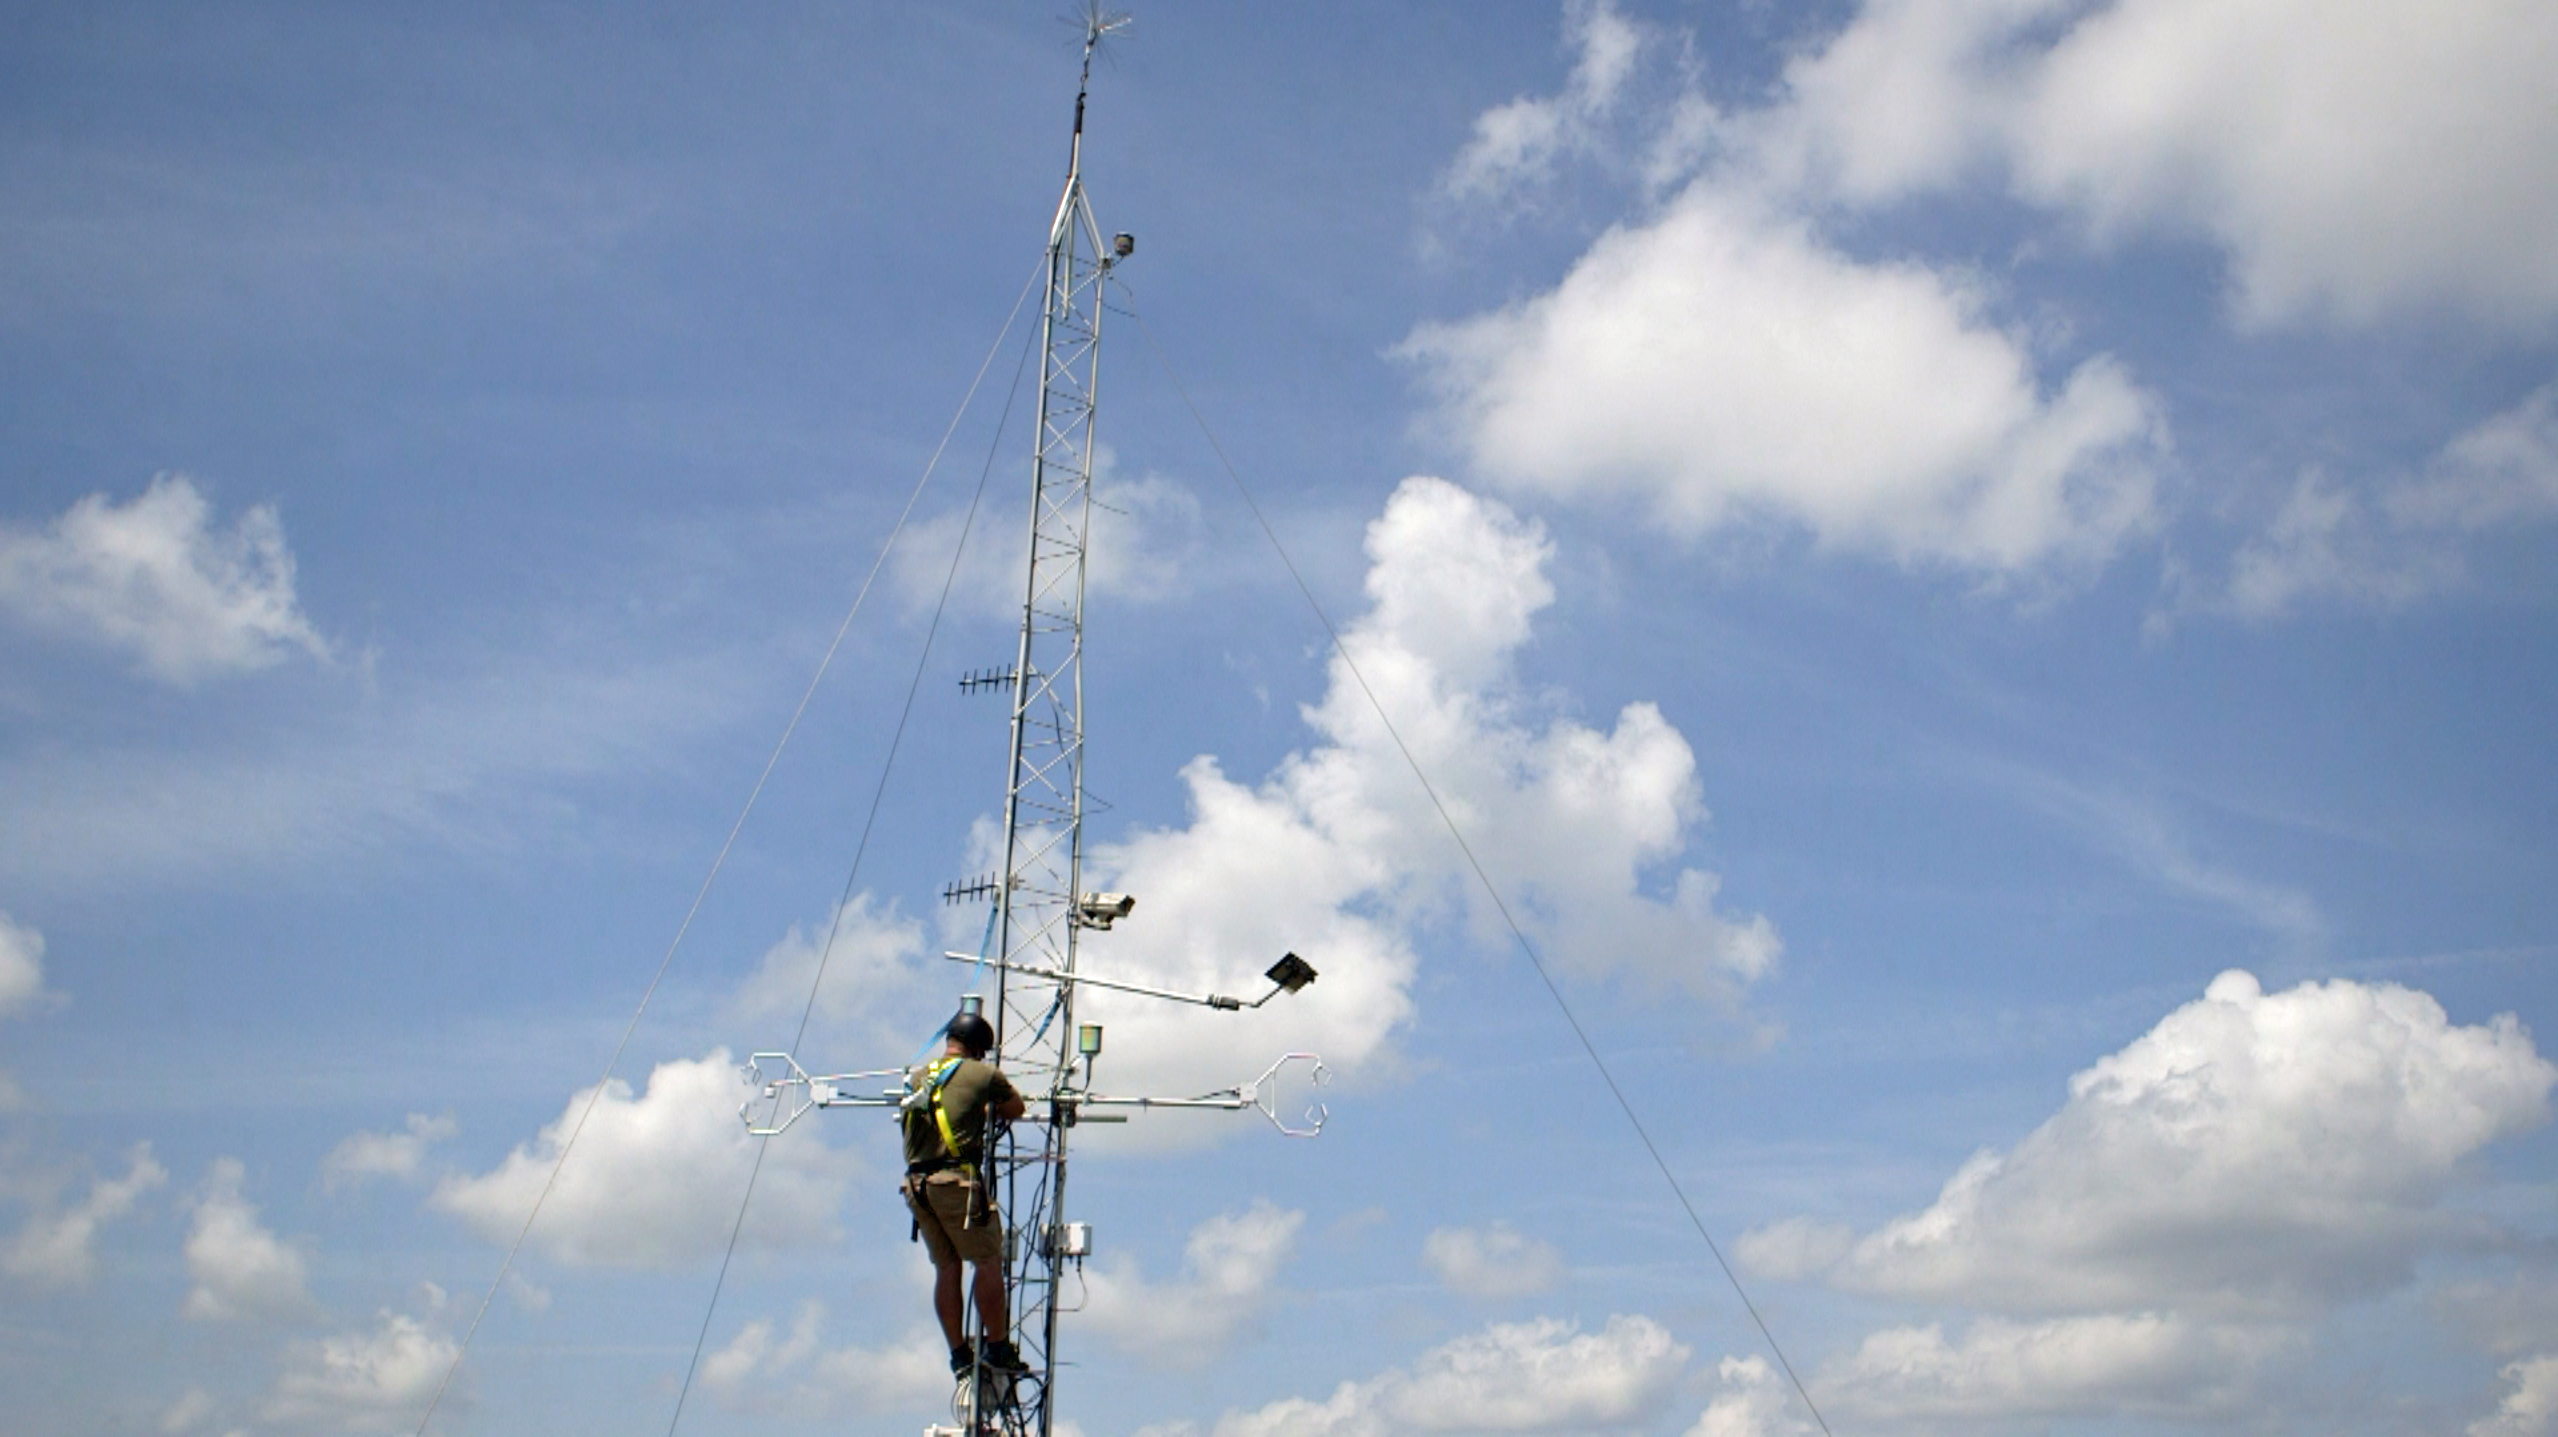 Marine scientist Jacob Shalack climbs the flux tower on Sapelo Island. Photo by Mike Fritz